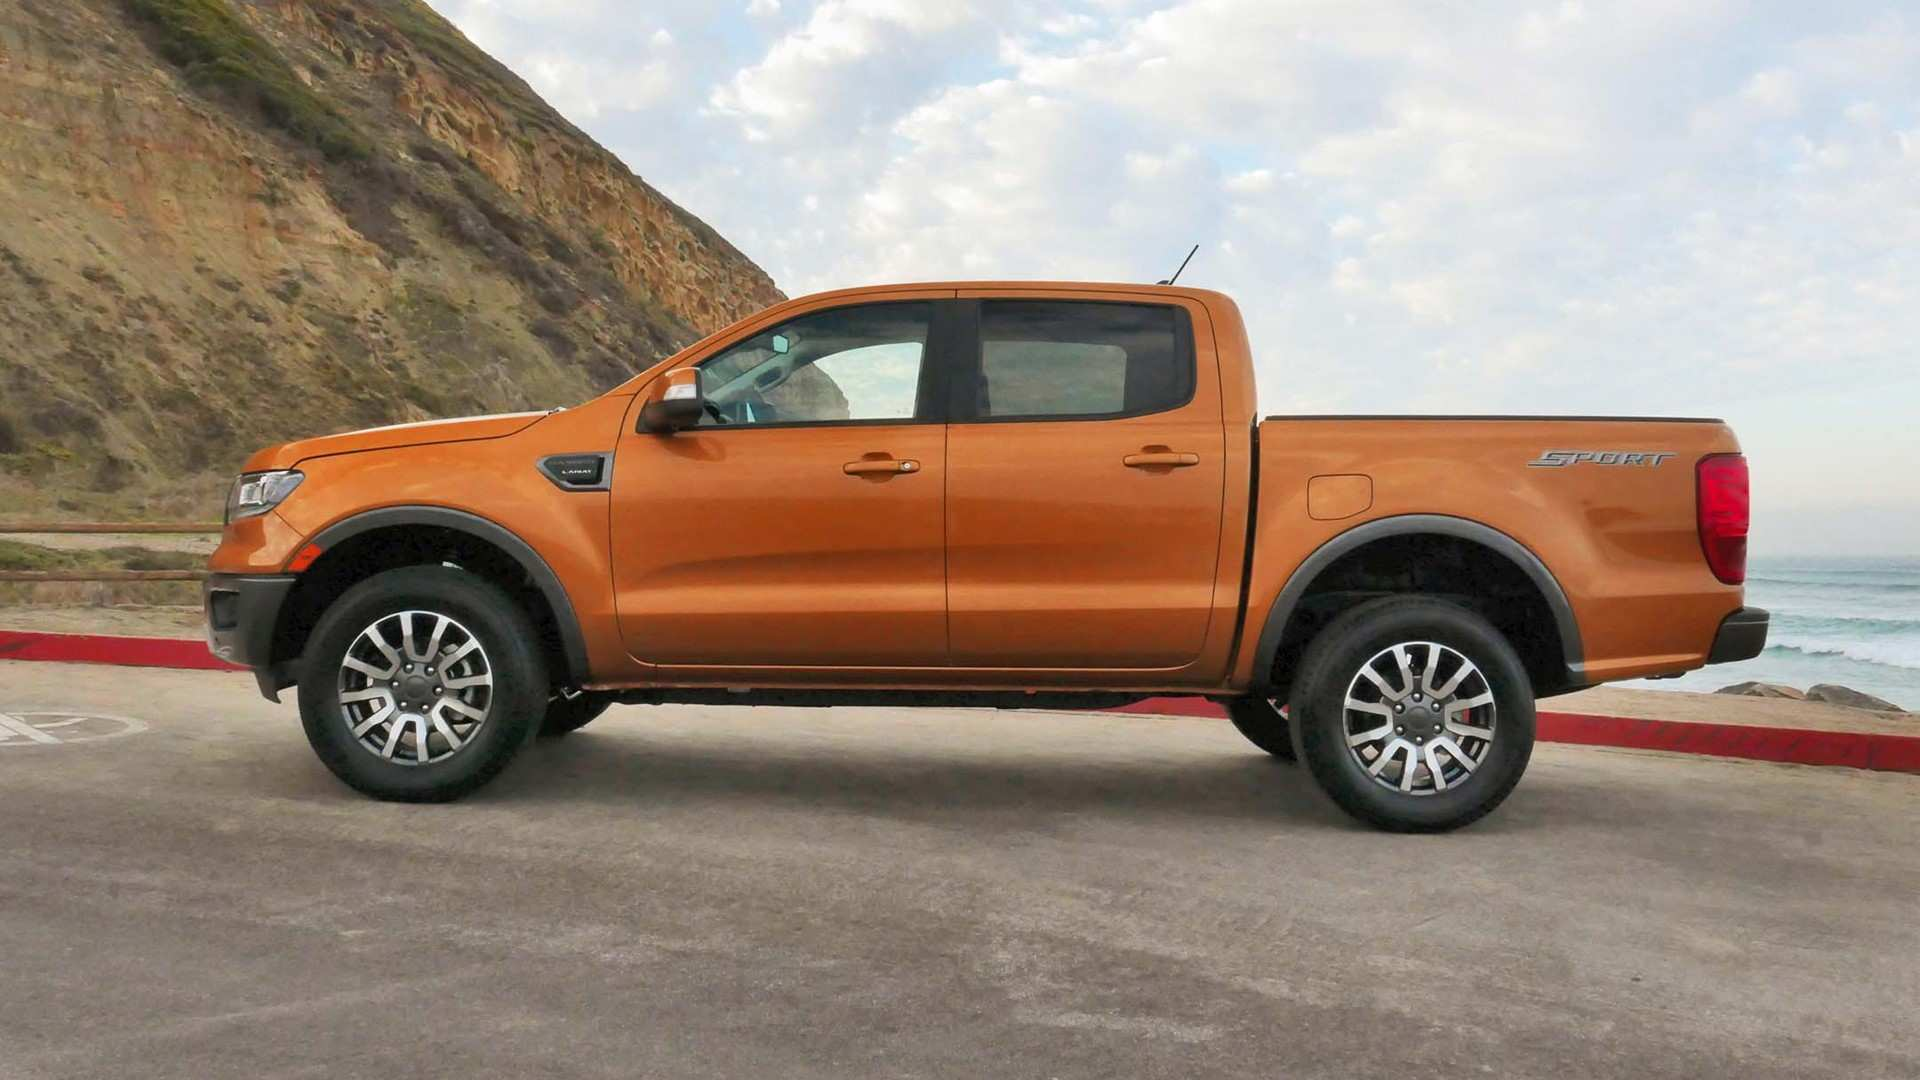 27 Gallery of Best Ford Ranger 2019 Canada First Drive Pricing with Best Ford Ranger 2019 Canada First Drive